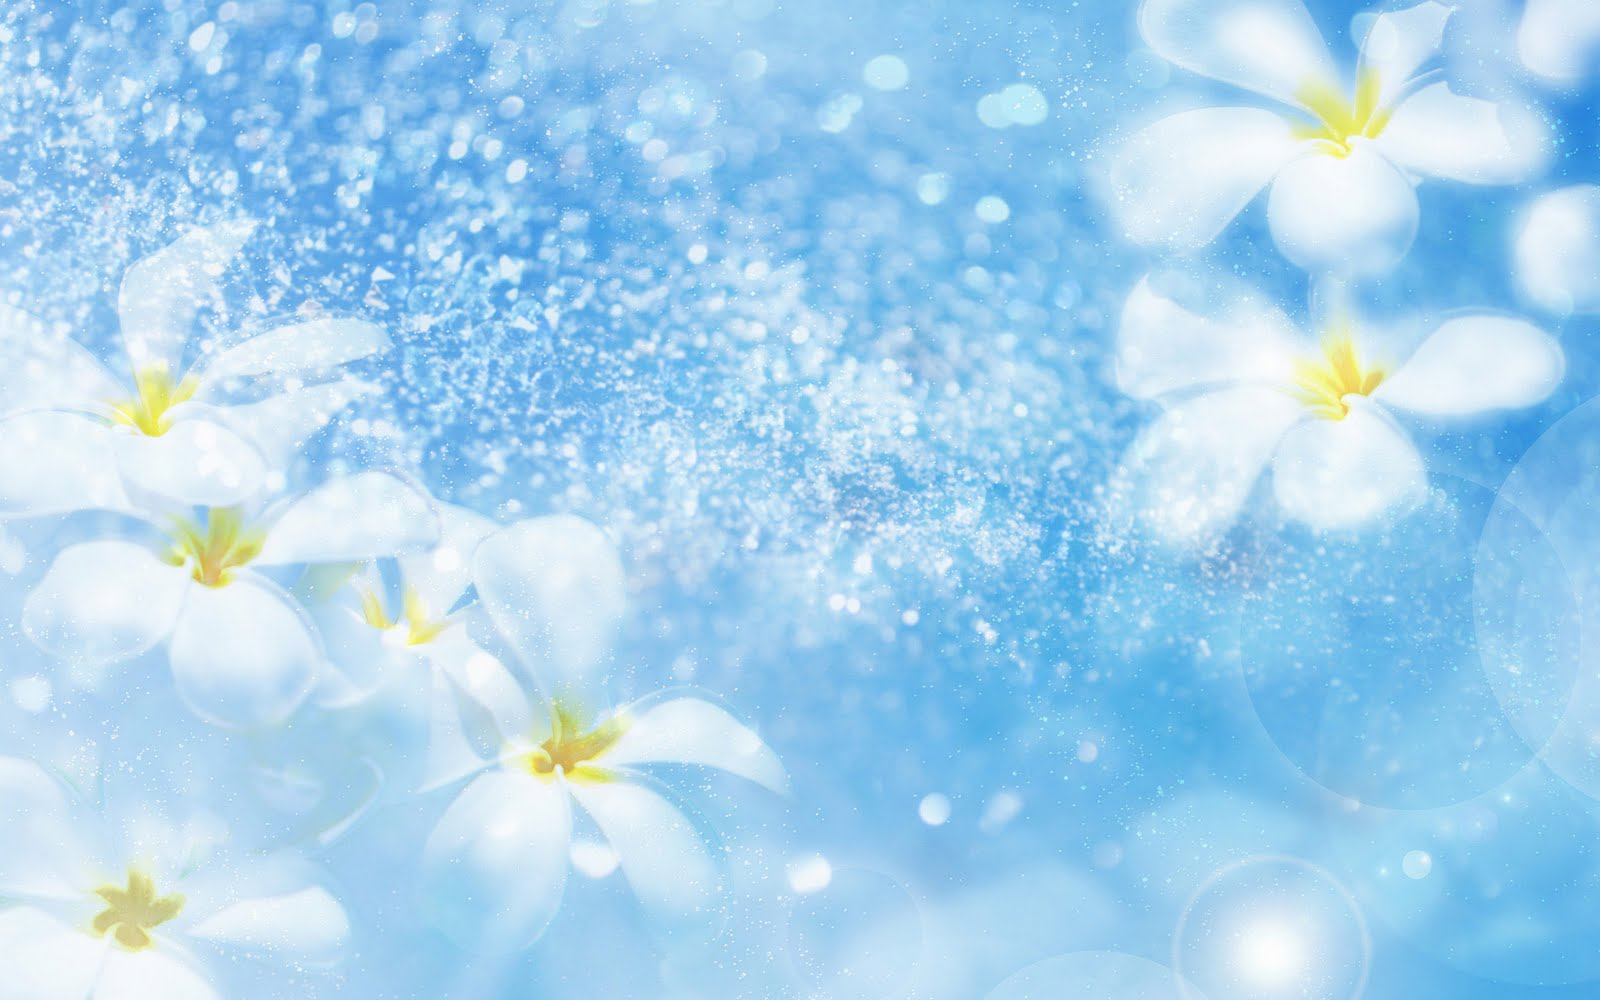 Sony Xperia Hd Wallpaper Free Download Flowers White Blue Background Fresh Lovely Wallpaper